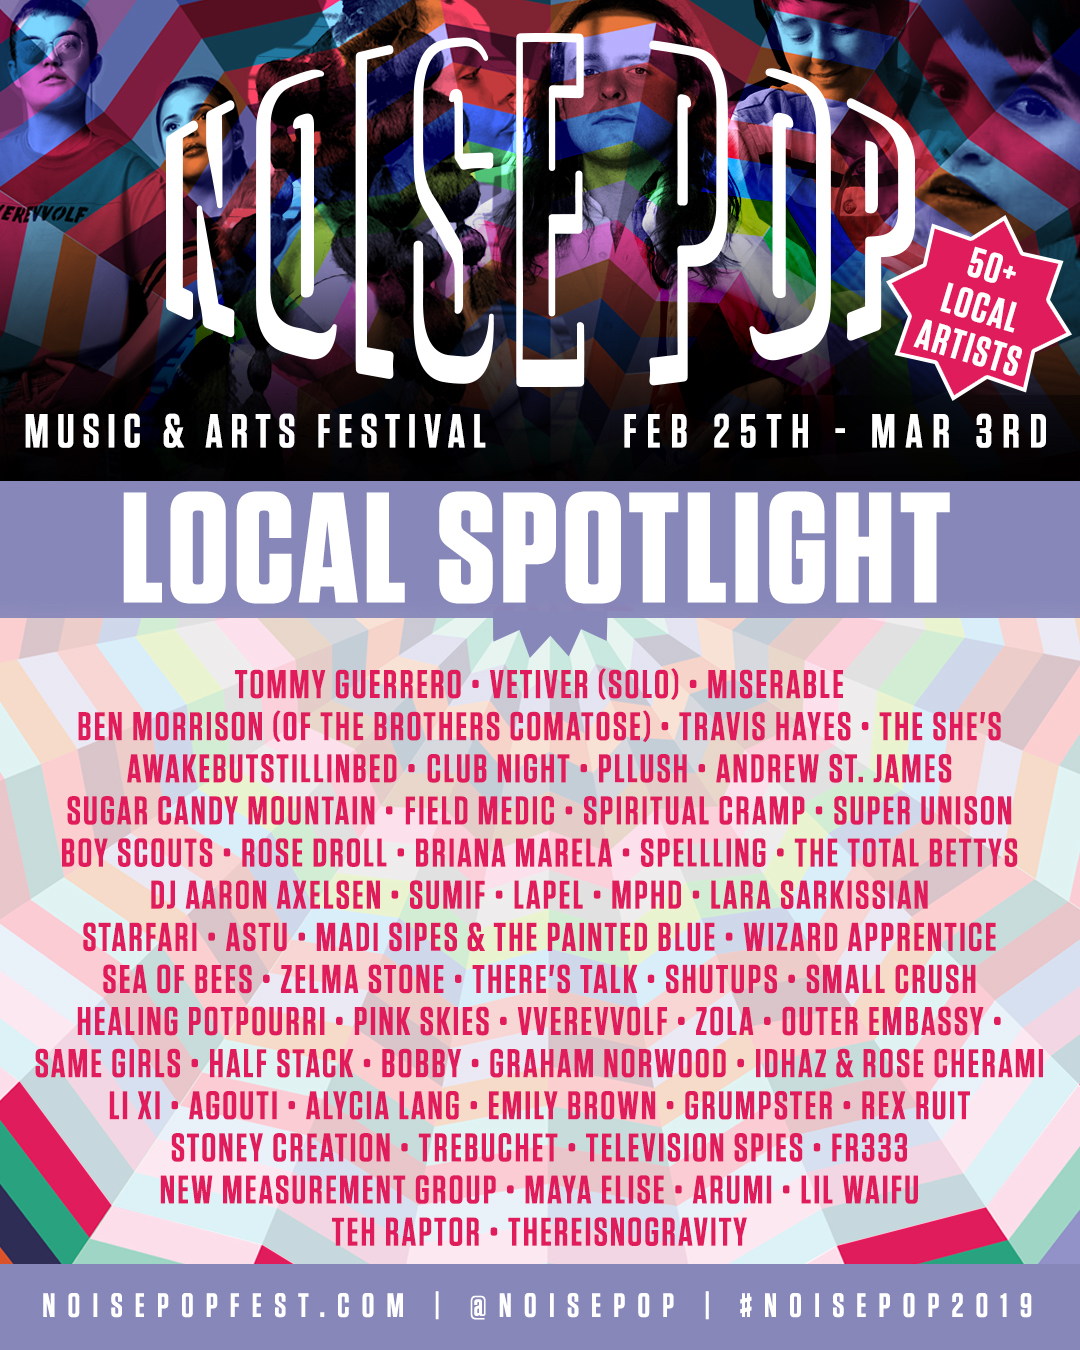 Noise Pop Festival 2019 - Local Artist Spotlight